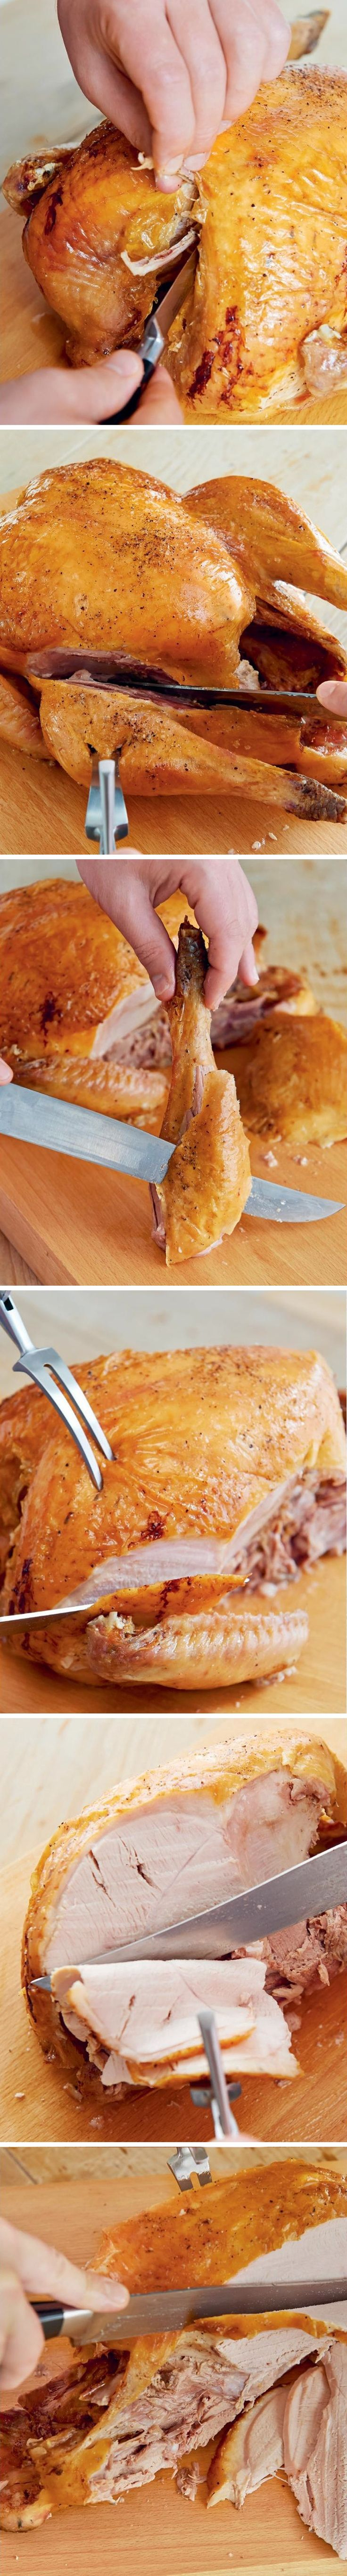 How to Carve Thanksgiving Turkey Like a Pro | Relish.com #Turkey #Thanksgiving